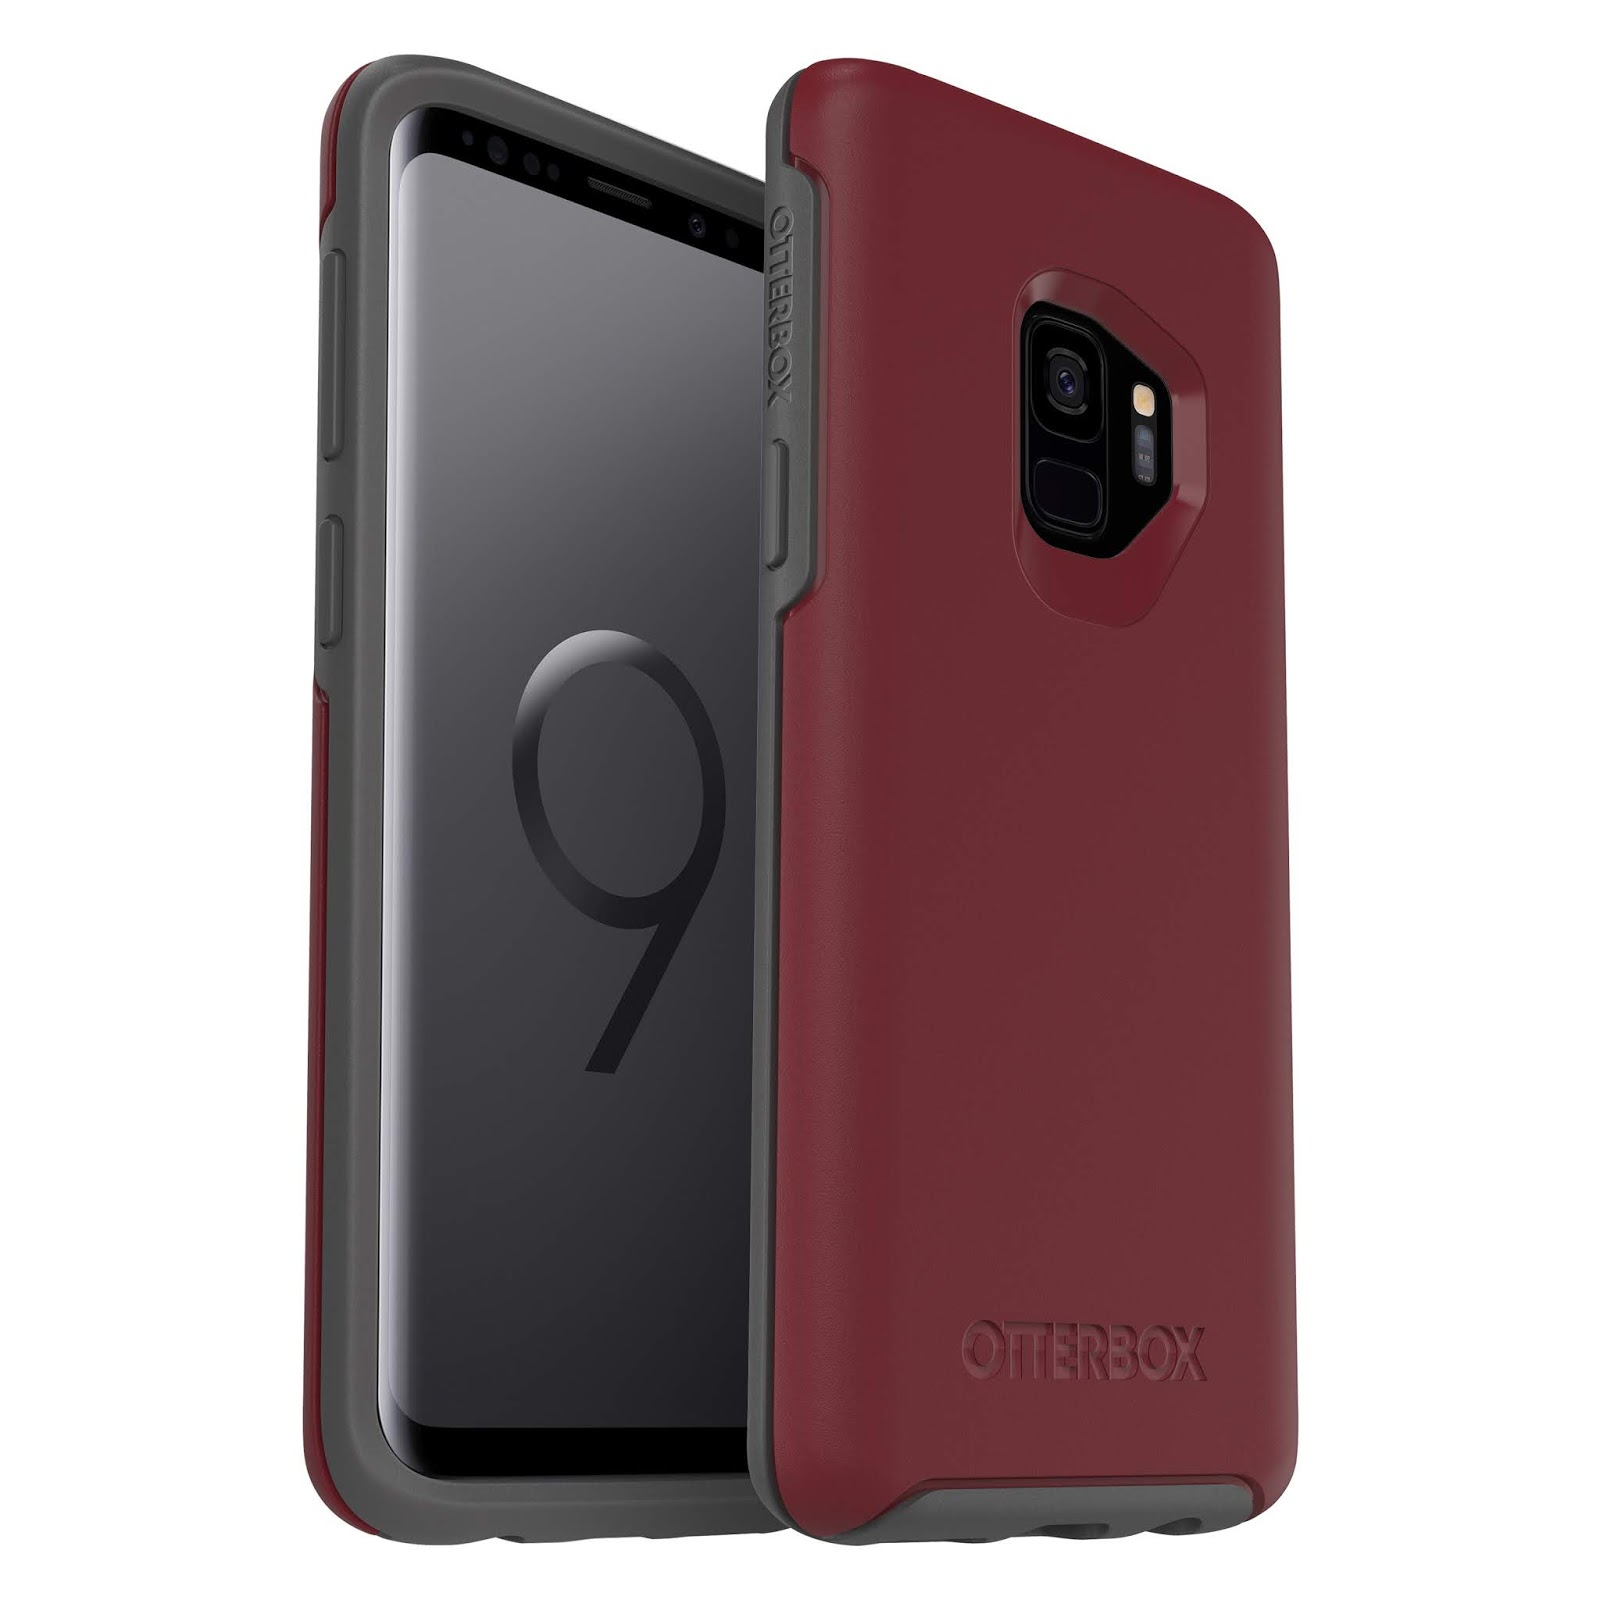 More Galaxy Love: OTTERBOX Announces Full Case Line-up